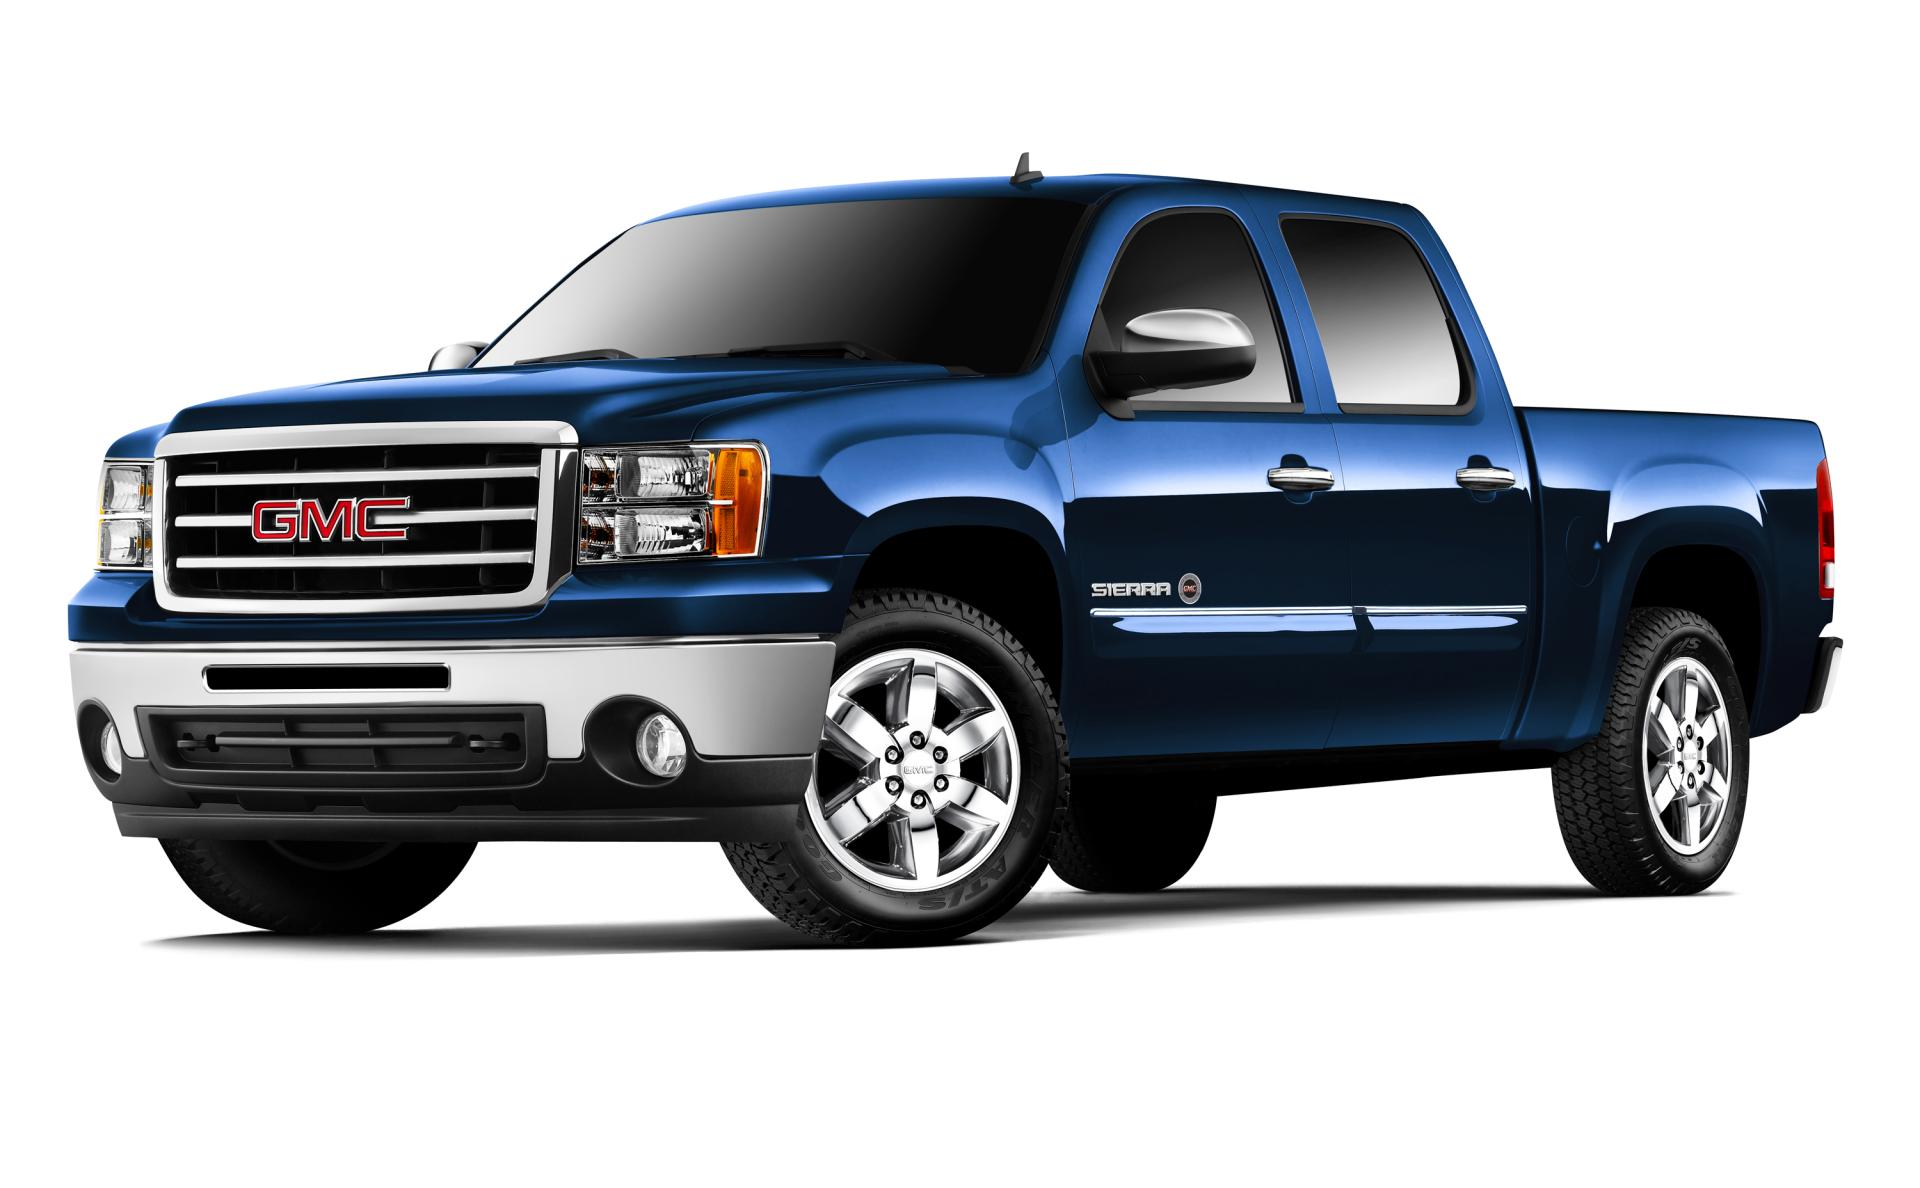 2012 GMC Sierra Heritage Edition News and Information